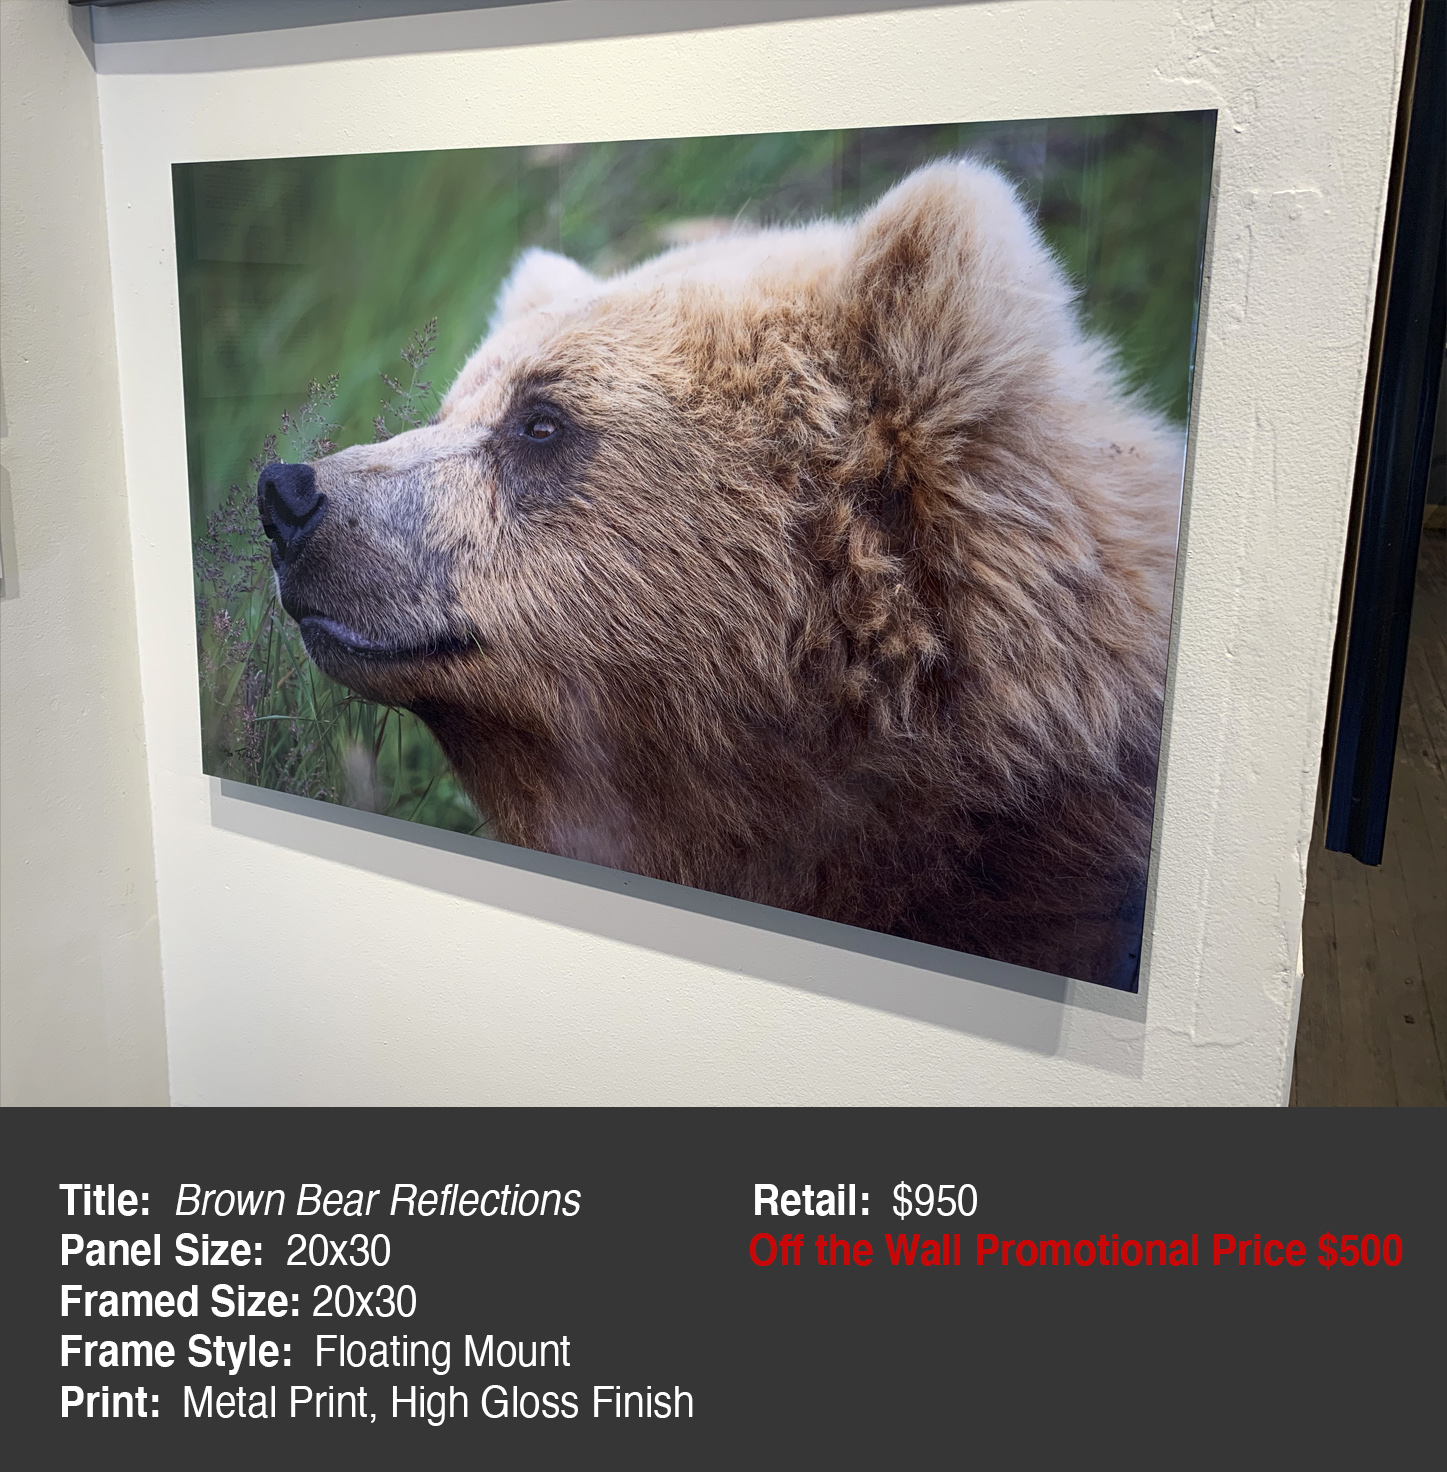 Brown Bear Reflections 20x30